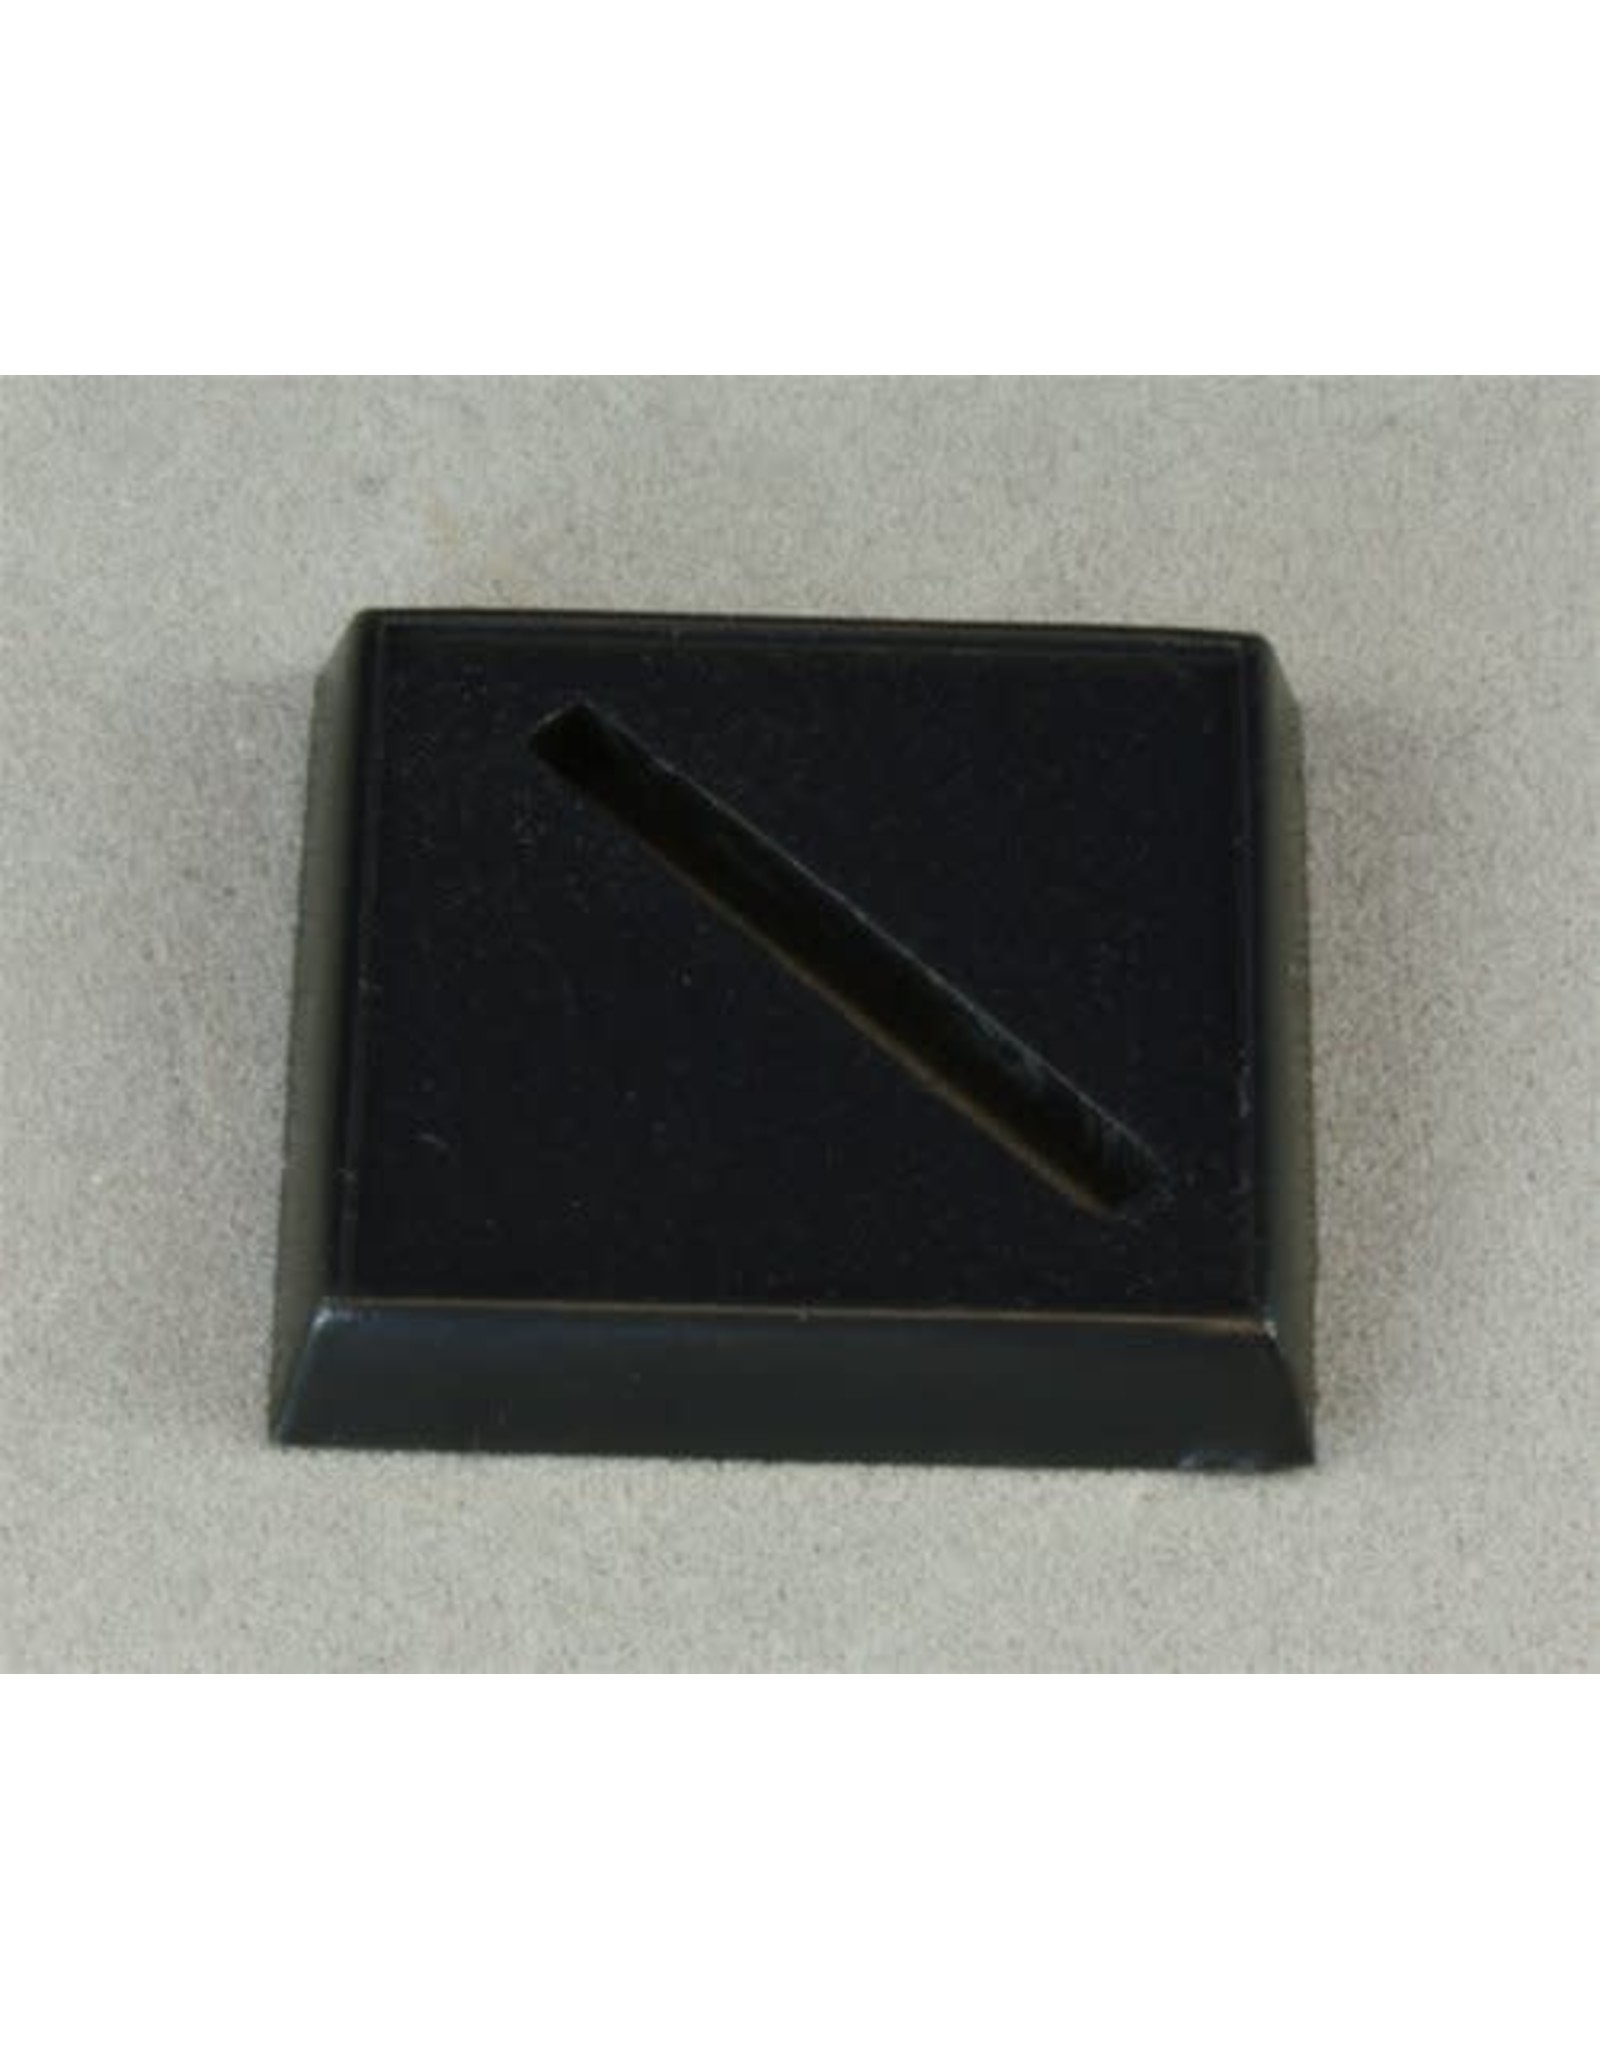 Reaper Miniatures 1 inch Sq Slotted Base (20)